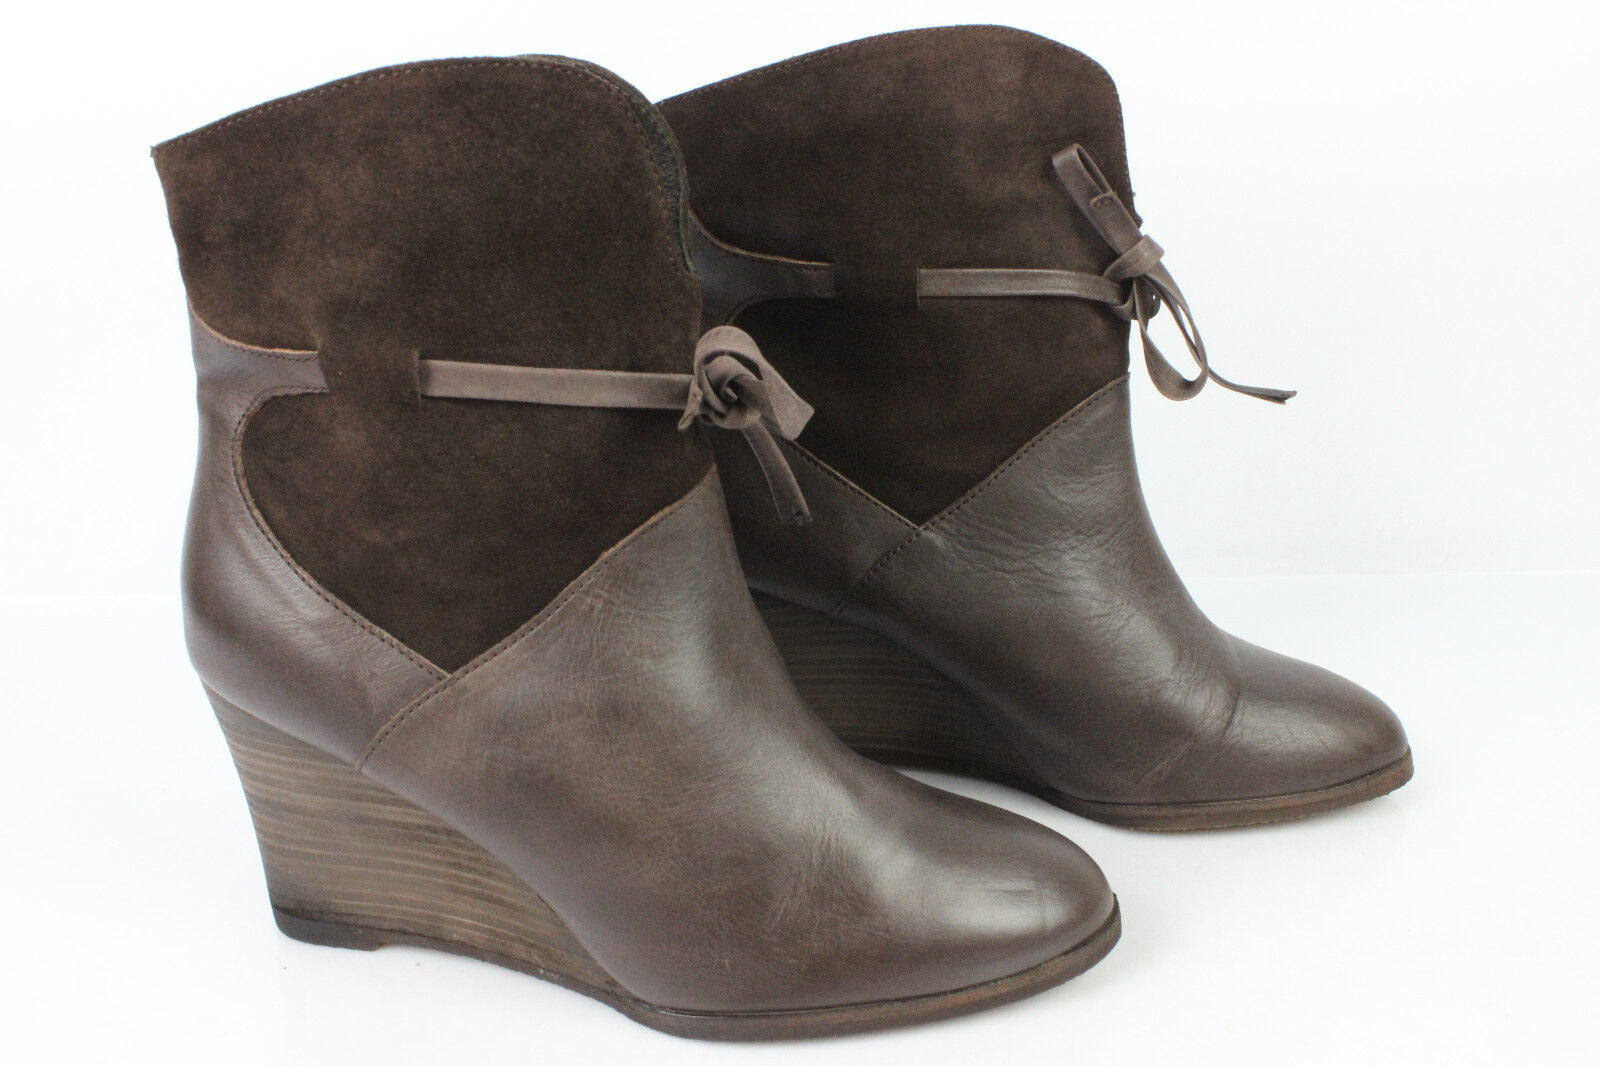 Boots Wedge Heels COMPTOIR DES COTONNIERS Leather and Suede Brown T 39